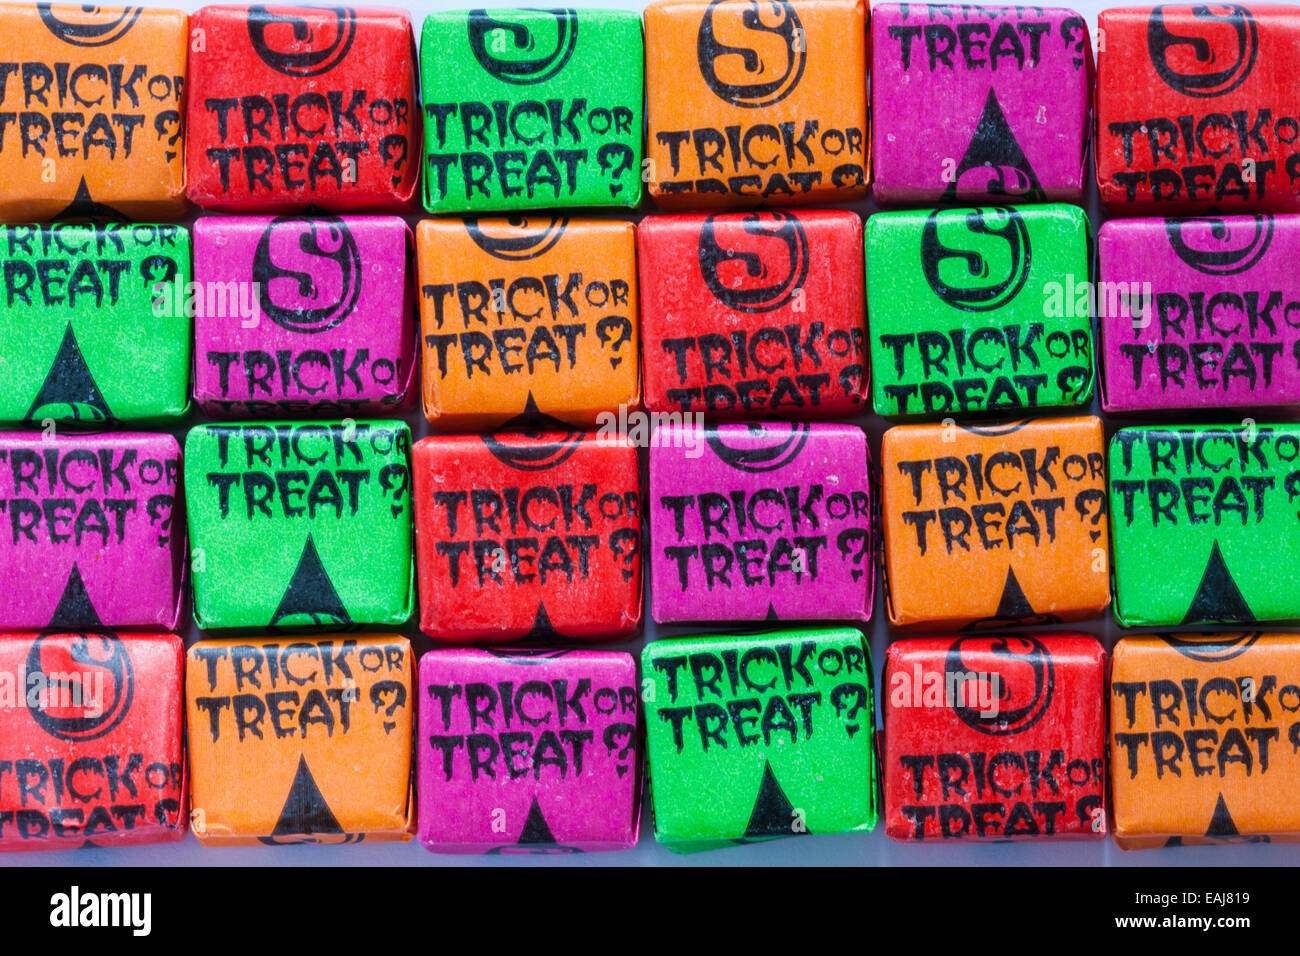 Starburst fruit chews scare edition trick or treat - Stock Image